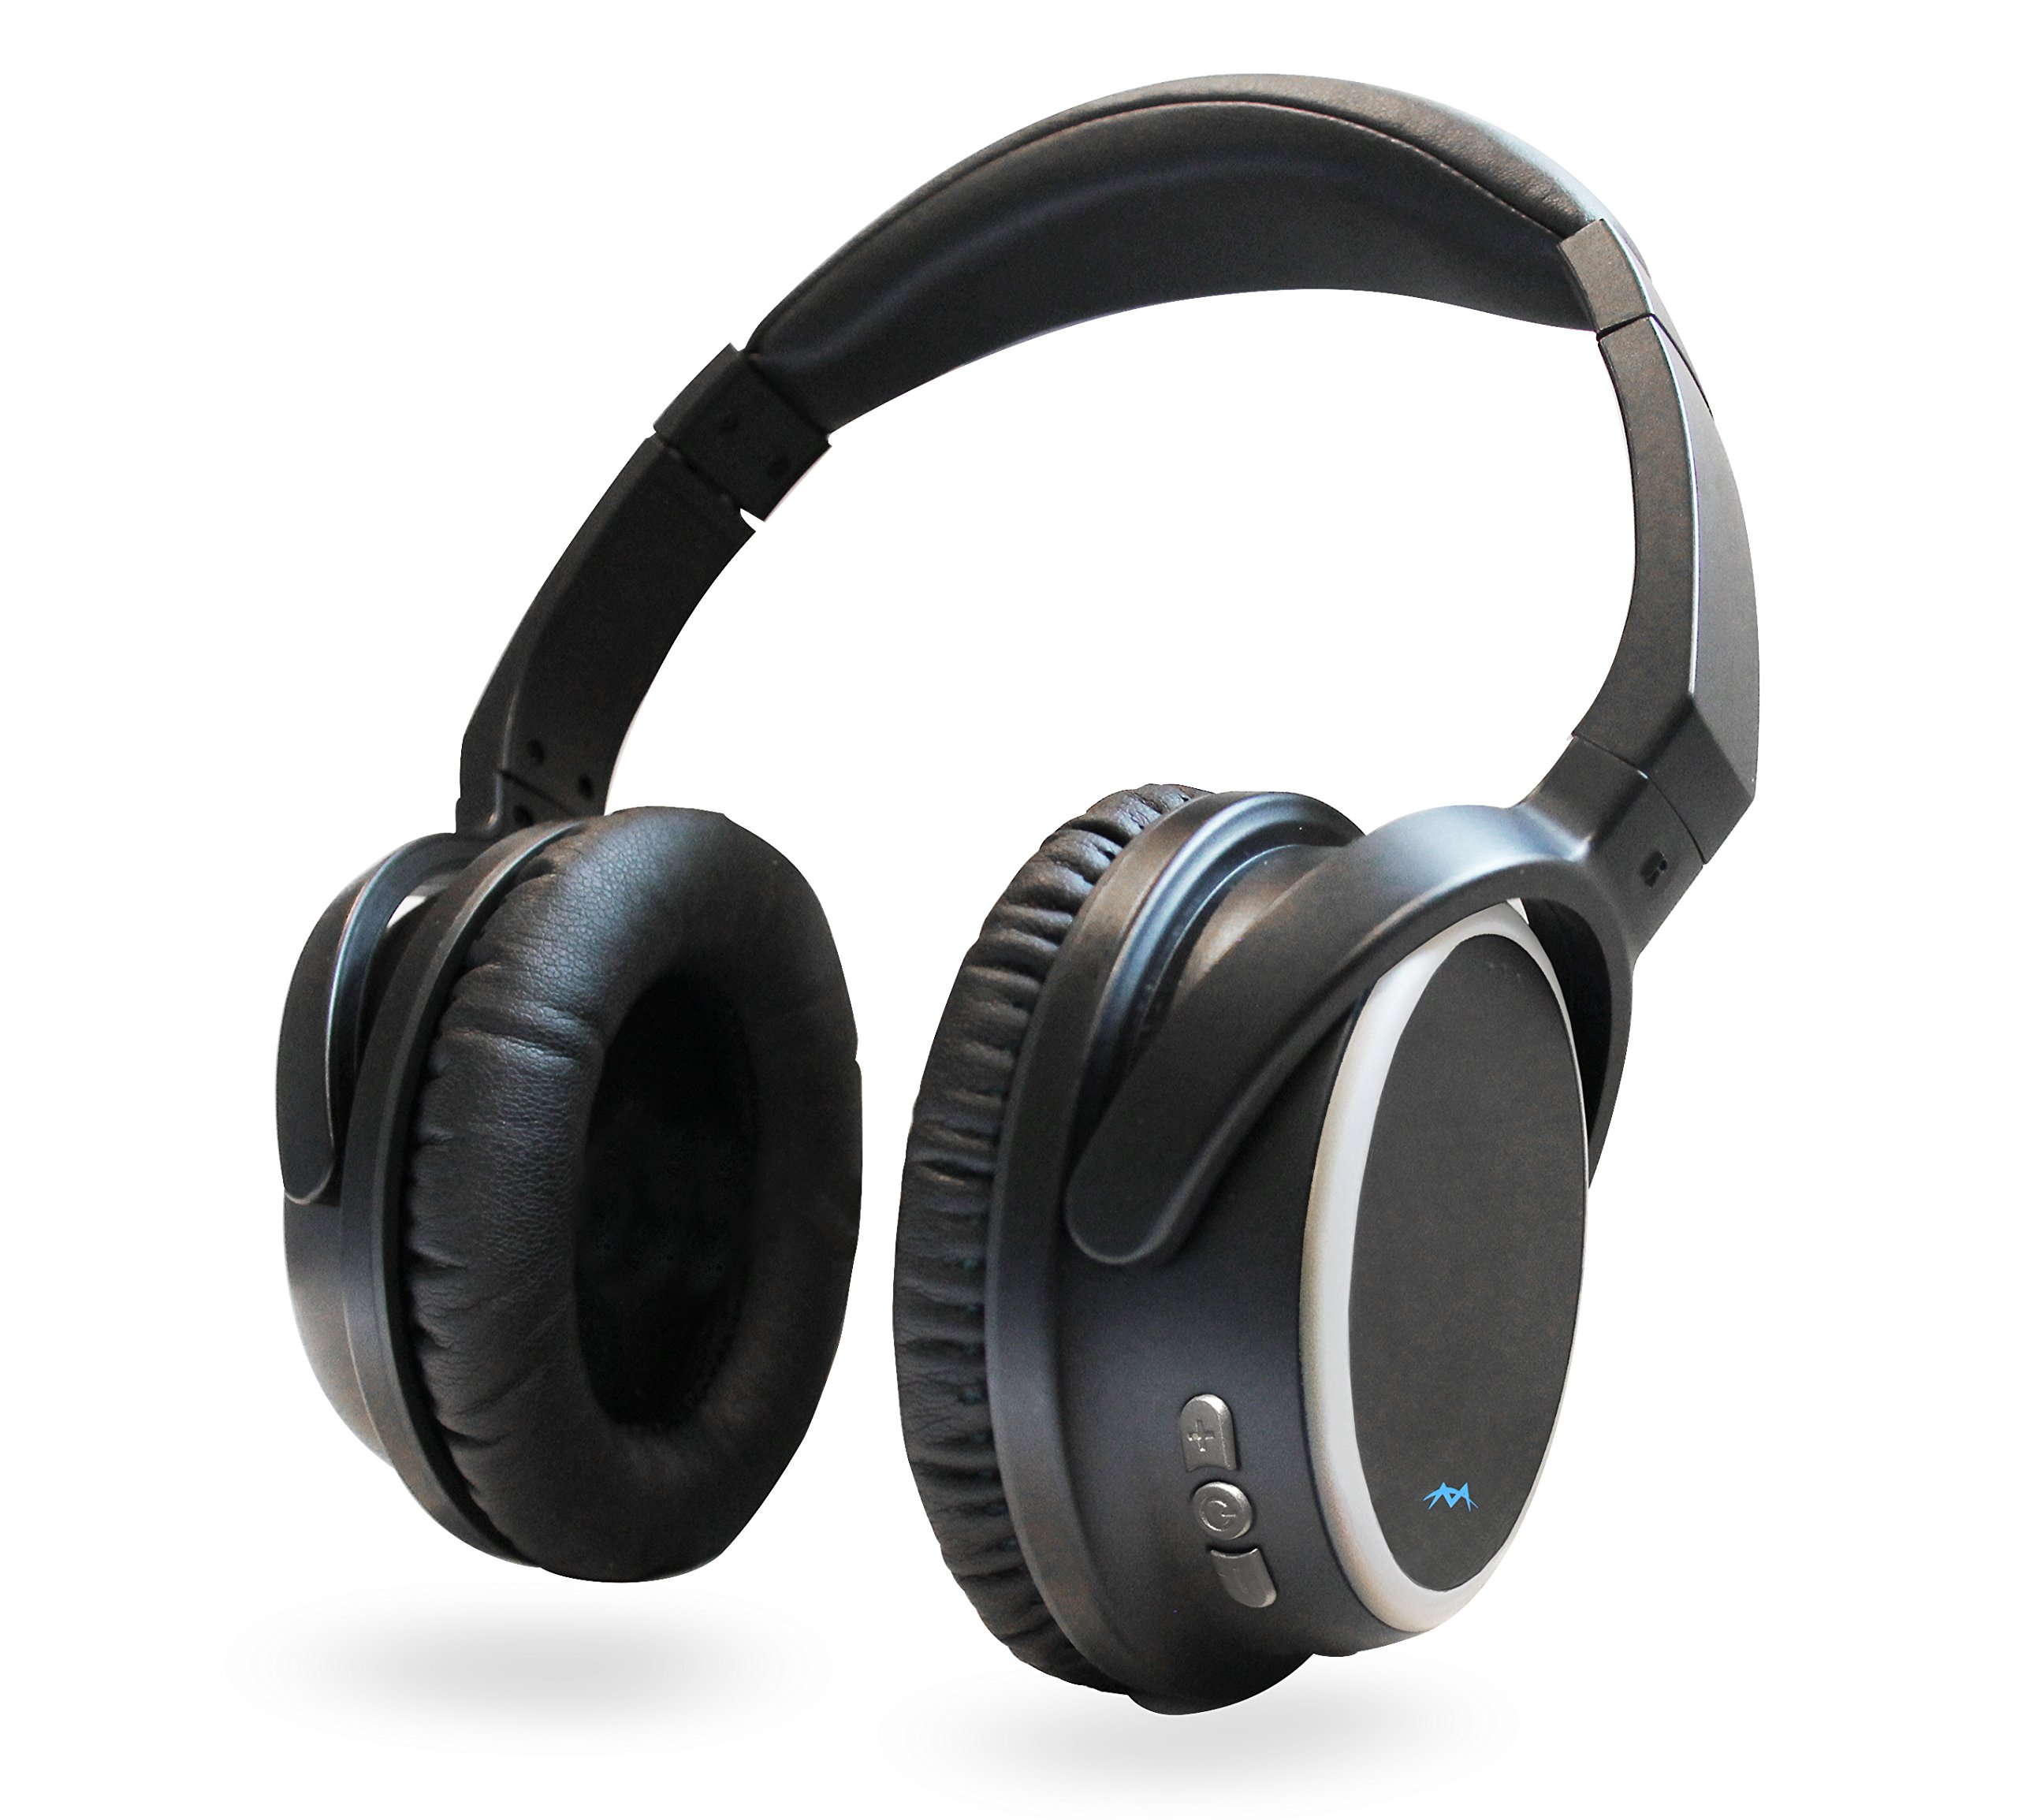 Miccus [Upgraded] aptX TV Bluetooth Headphones v4.2 Over Ear, Listen in HD NO DELAY, Low Latency, Noise Isolating Wireless Headset with Mic for iPhone Computer PC Work Travel Foldable (SR-71 Stealth)